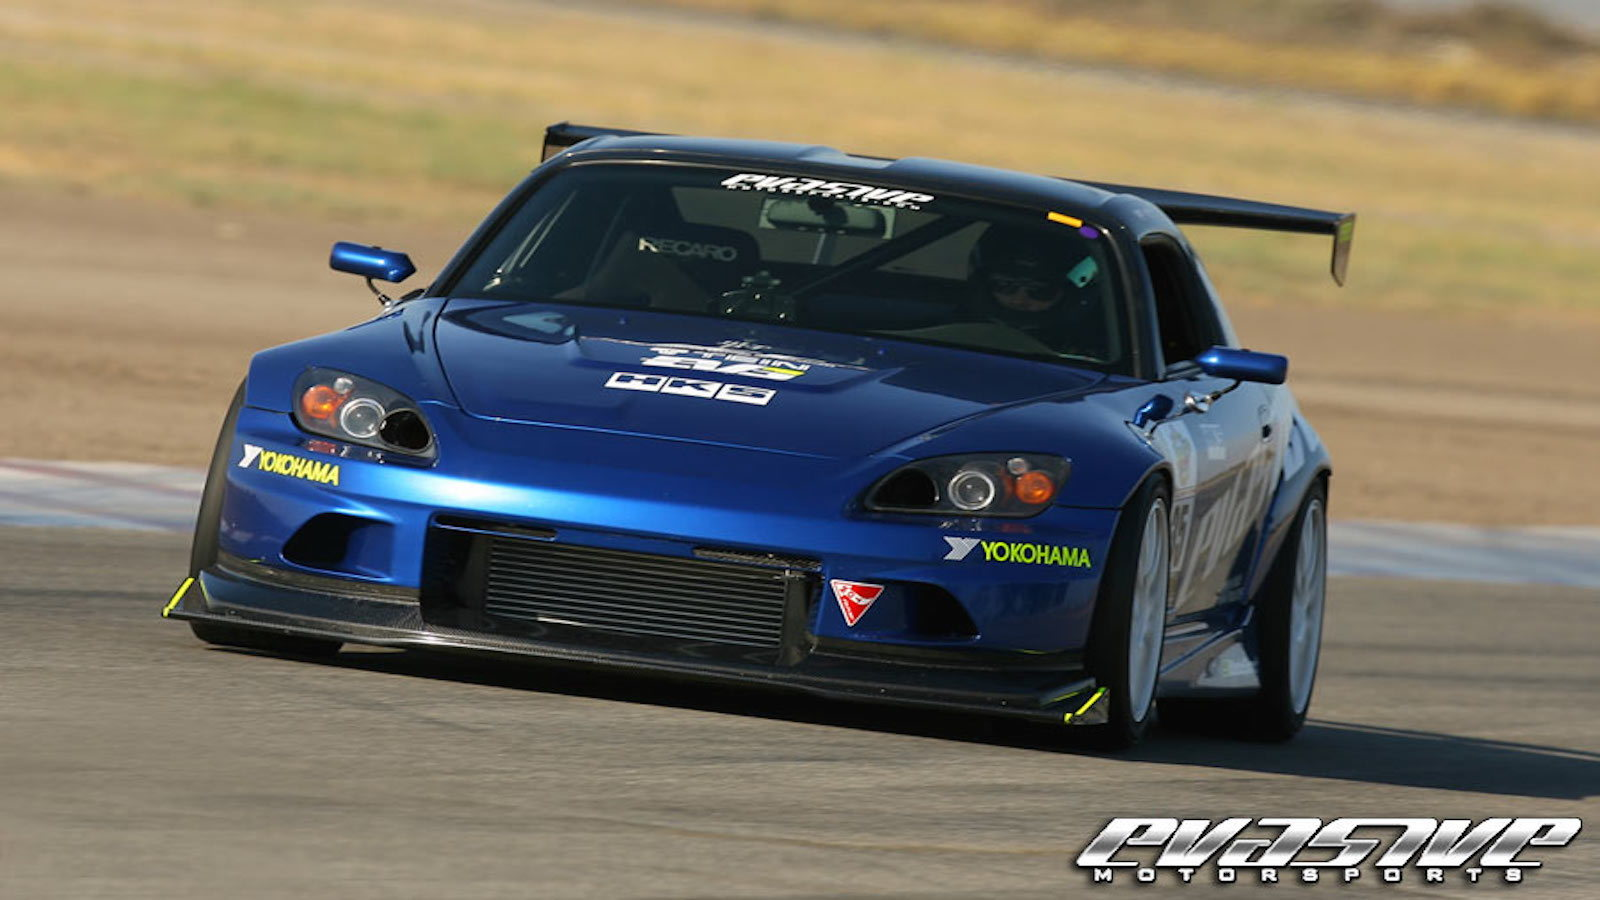 S2000 Weekend Racer? Yes Please